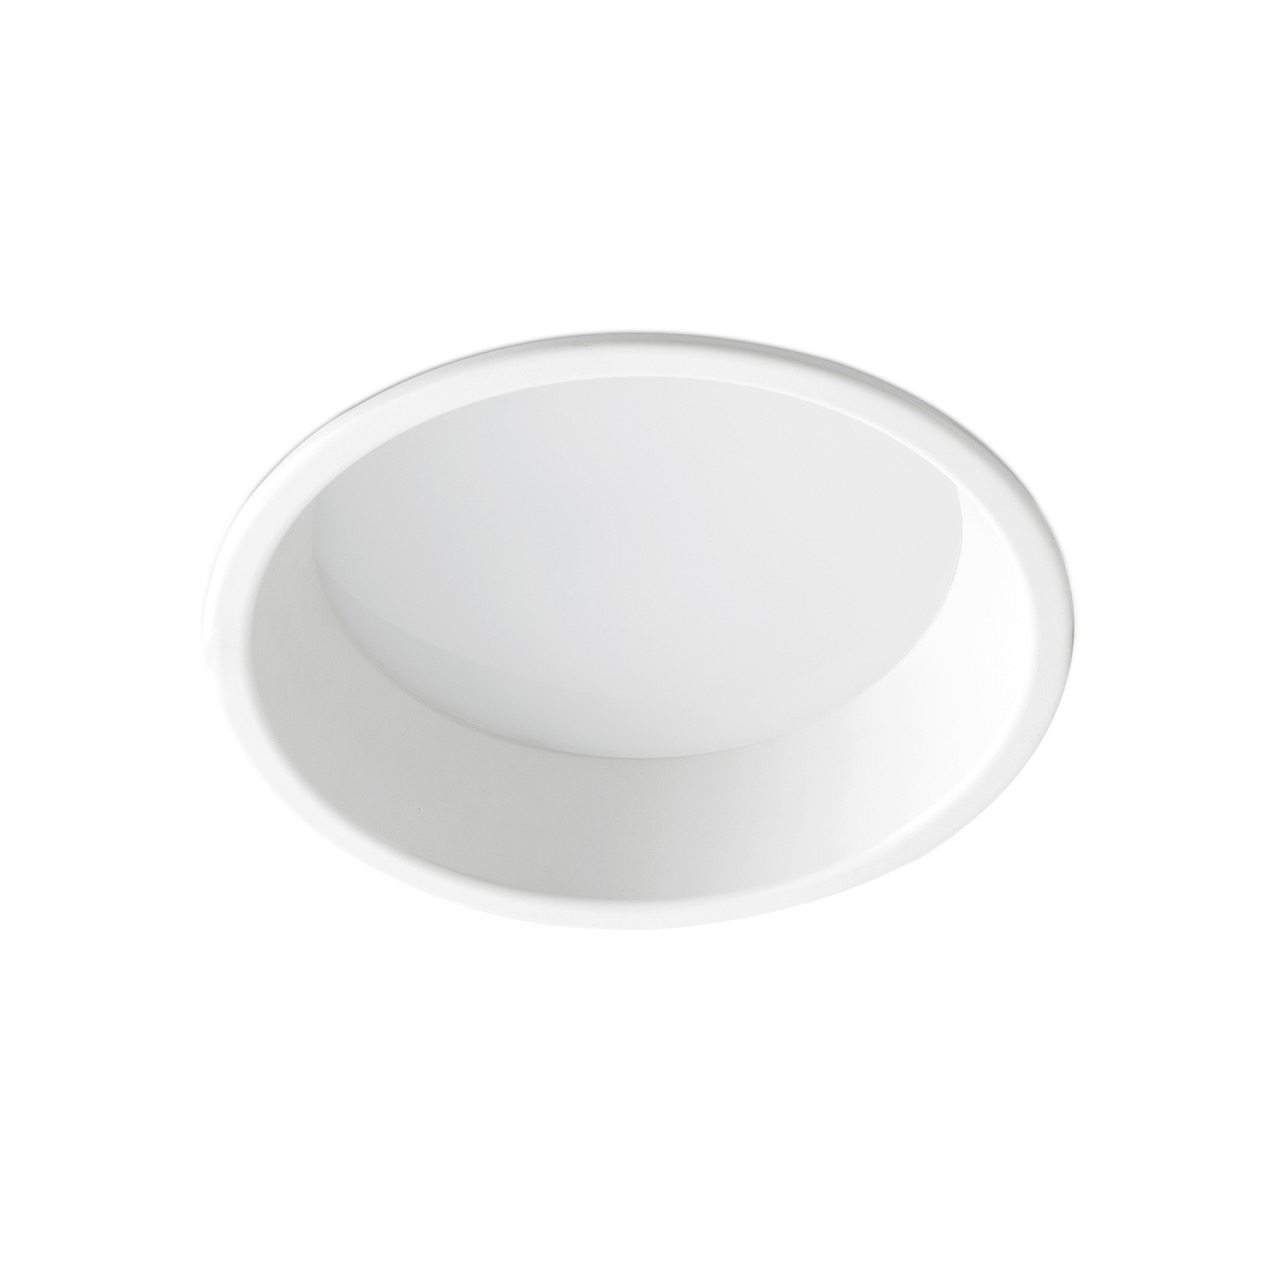 Comprar focos downlight empotrables de led modelo son de for Focos led para casa